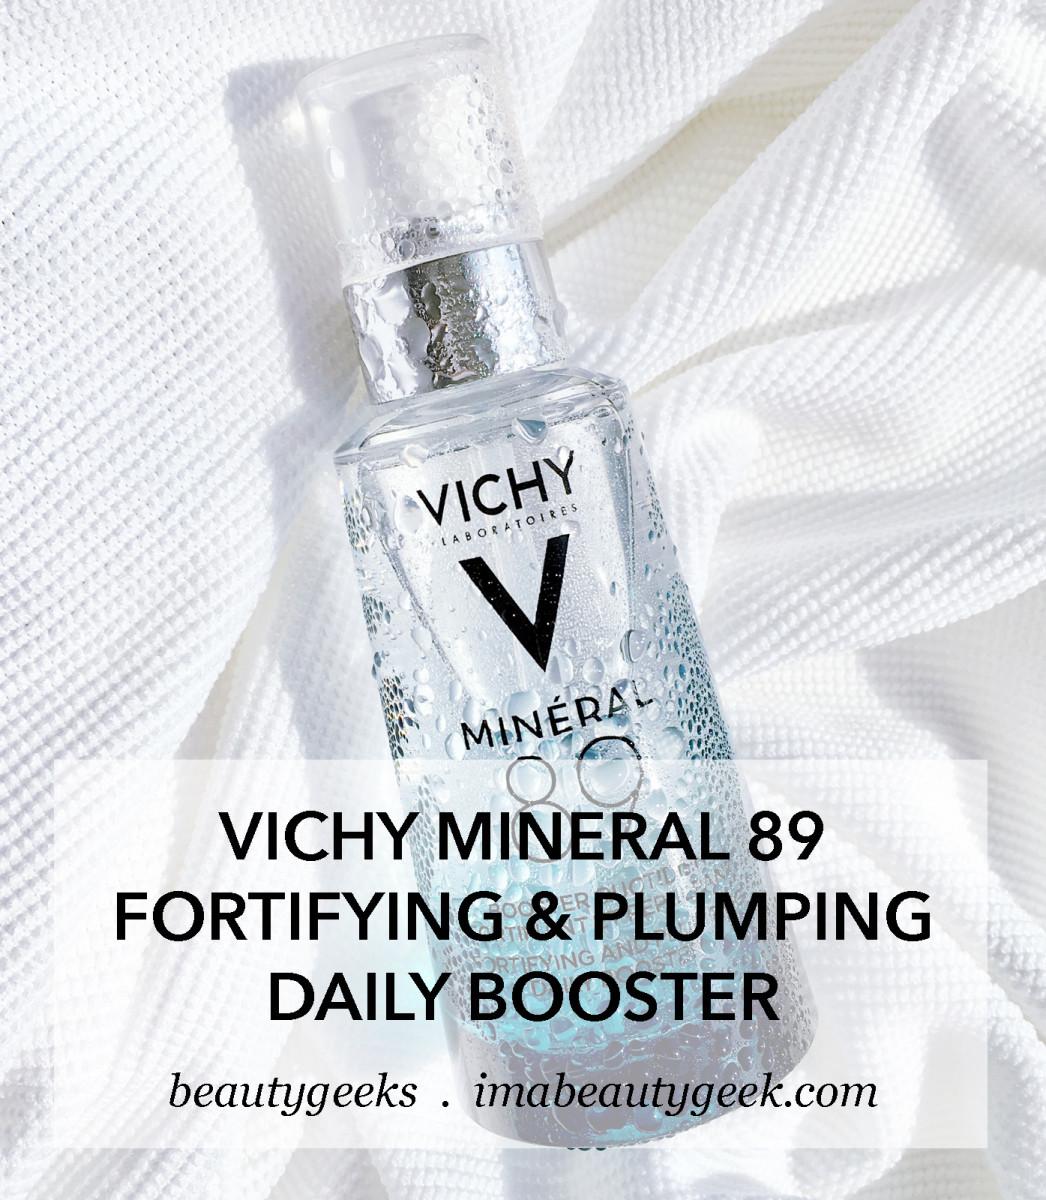 Vichy Mineral 89 Fortifying and Plumping Daily Booster thermal water and hyaluronic acid